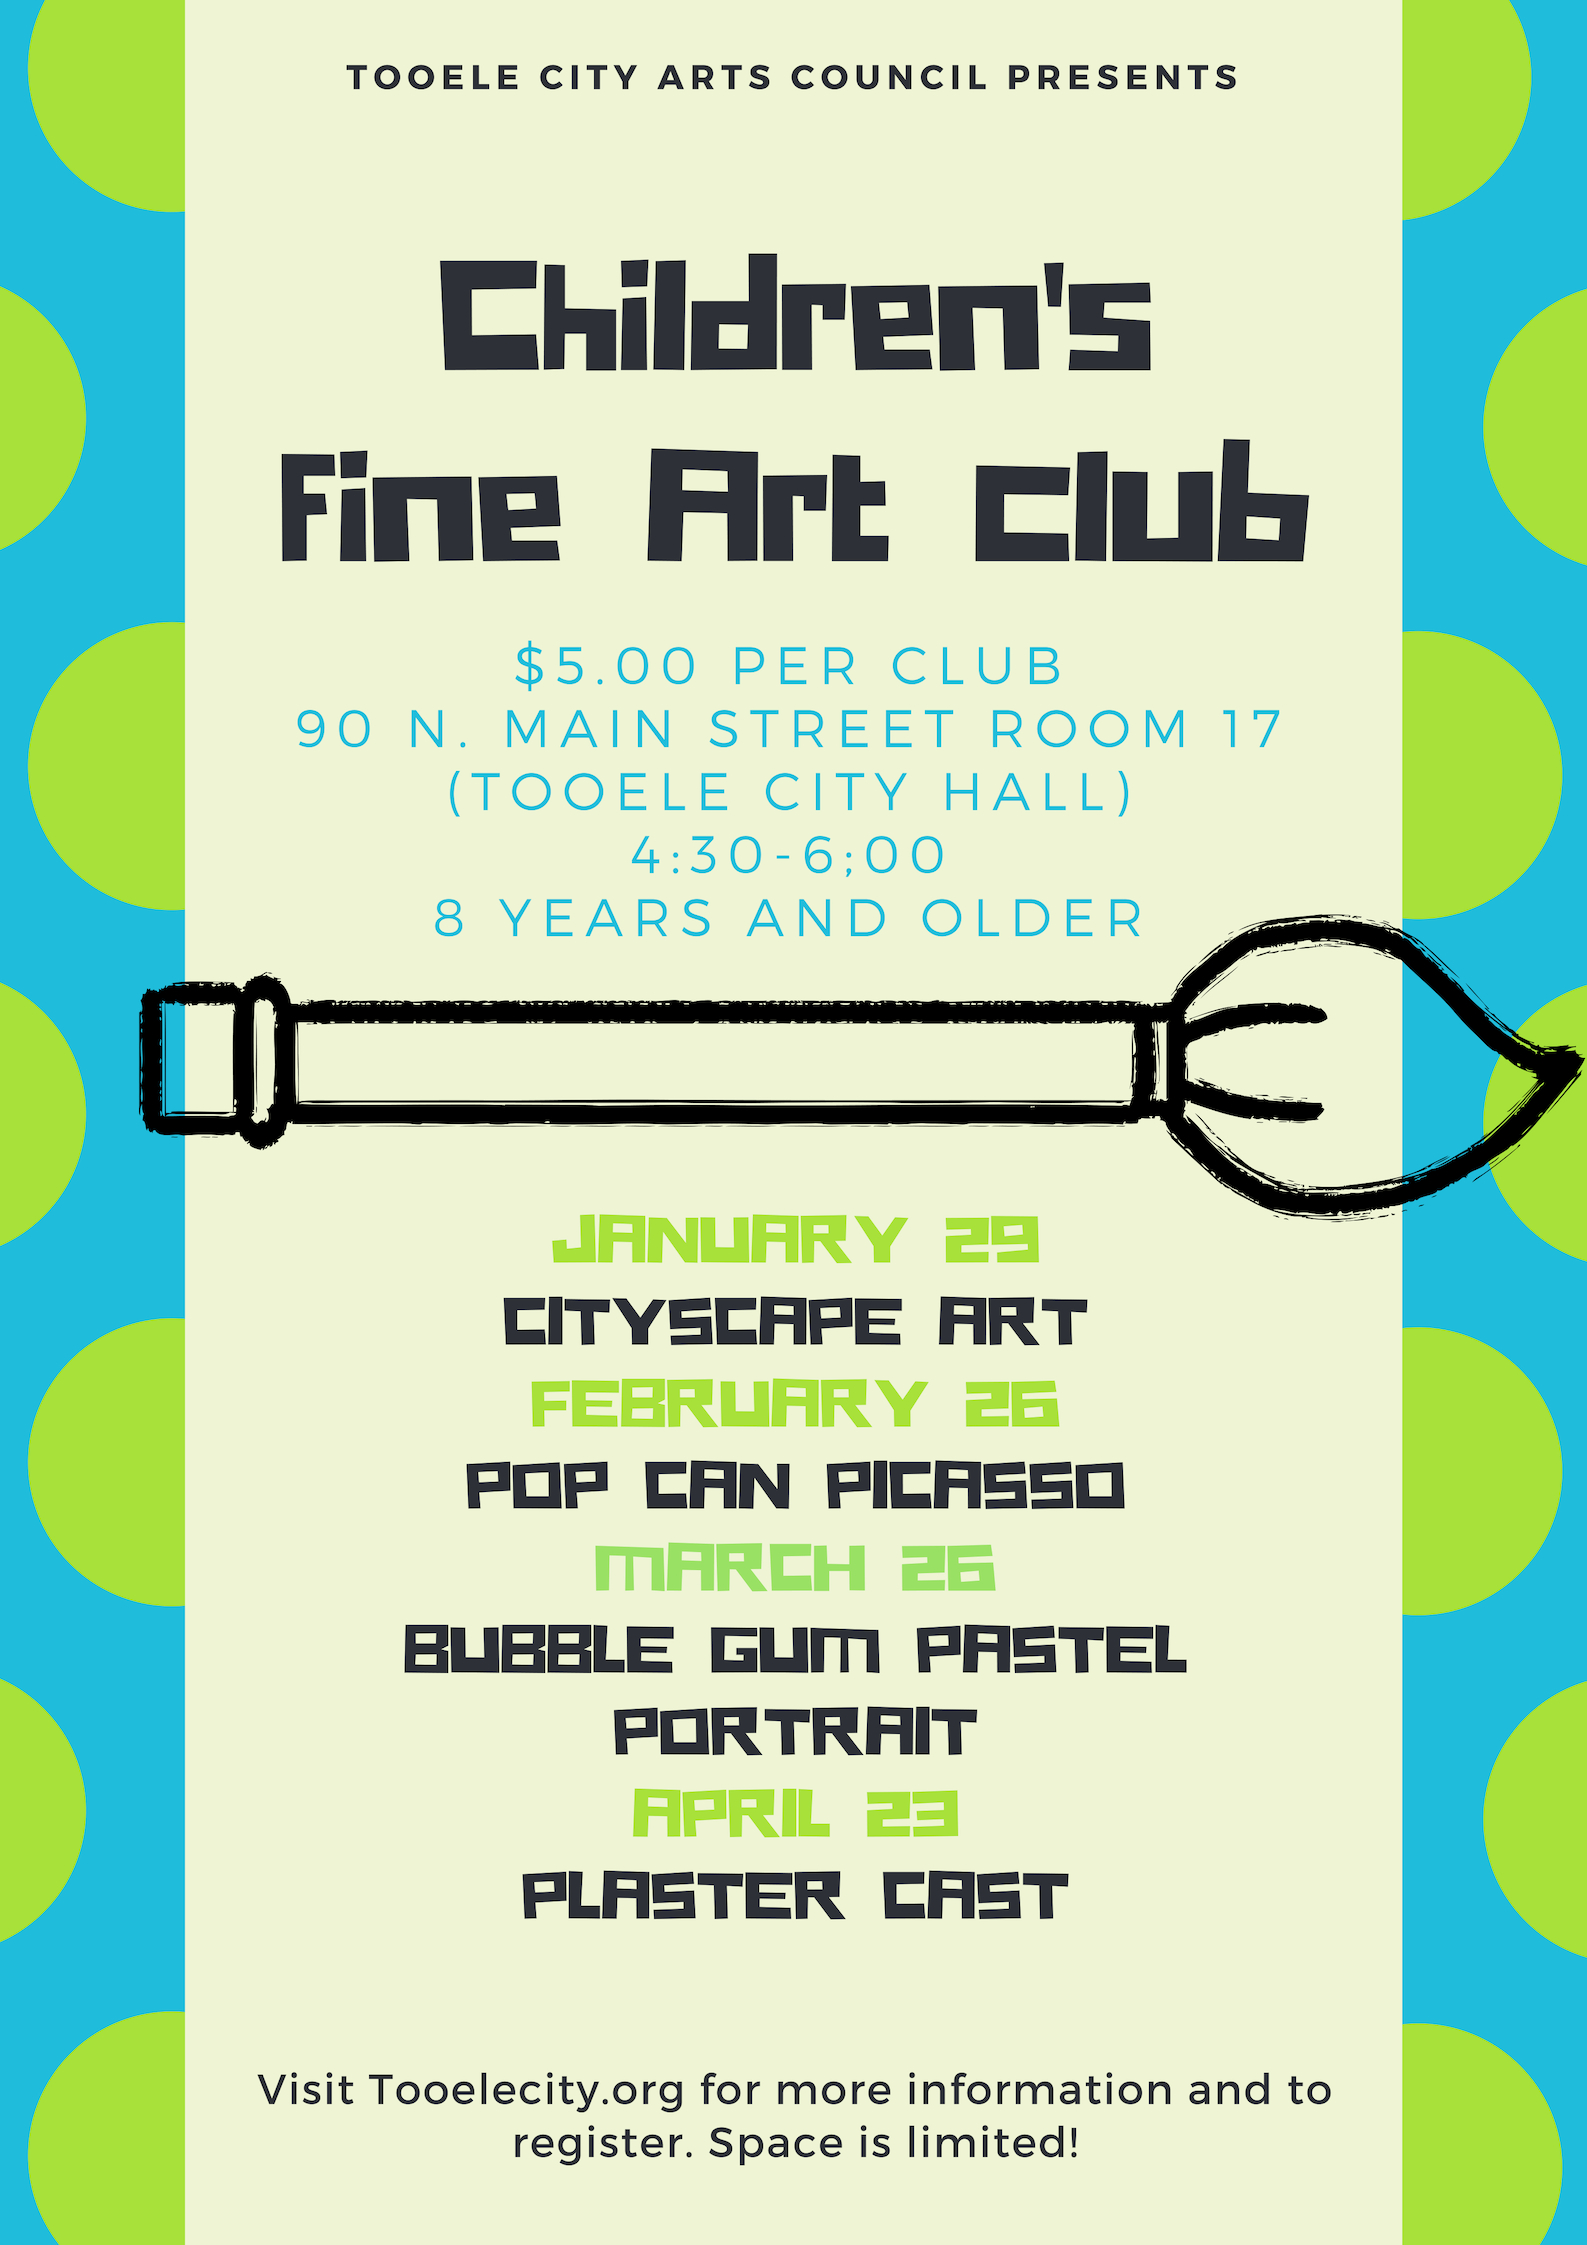 Children's Fine Art Club: Plaster Cast @ Tooele City Hall | Tooele | Utah | United States